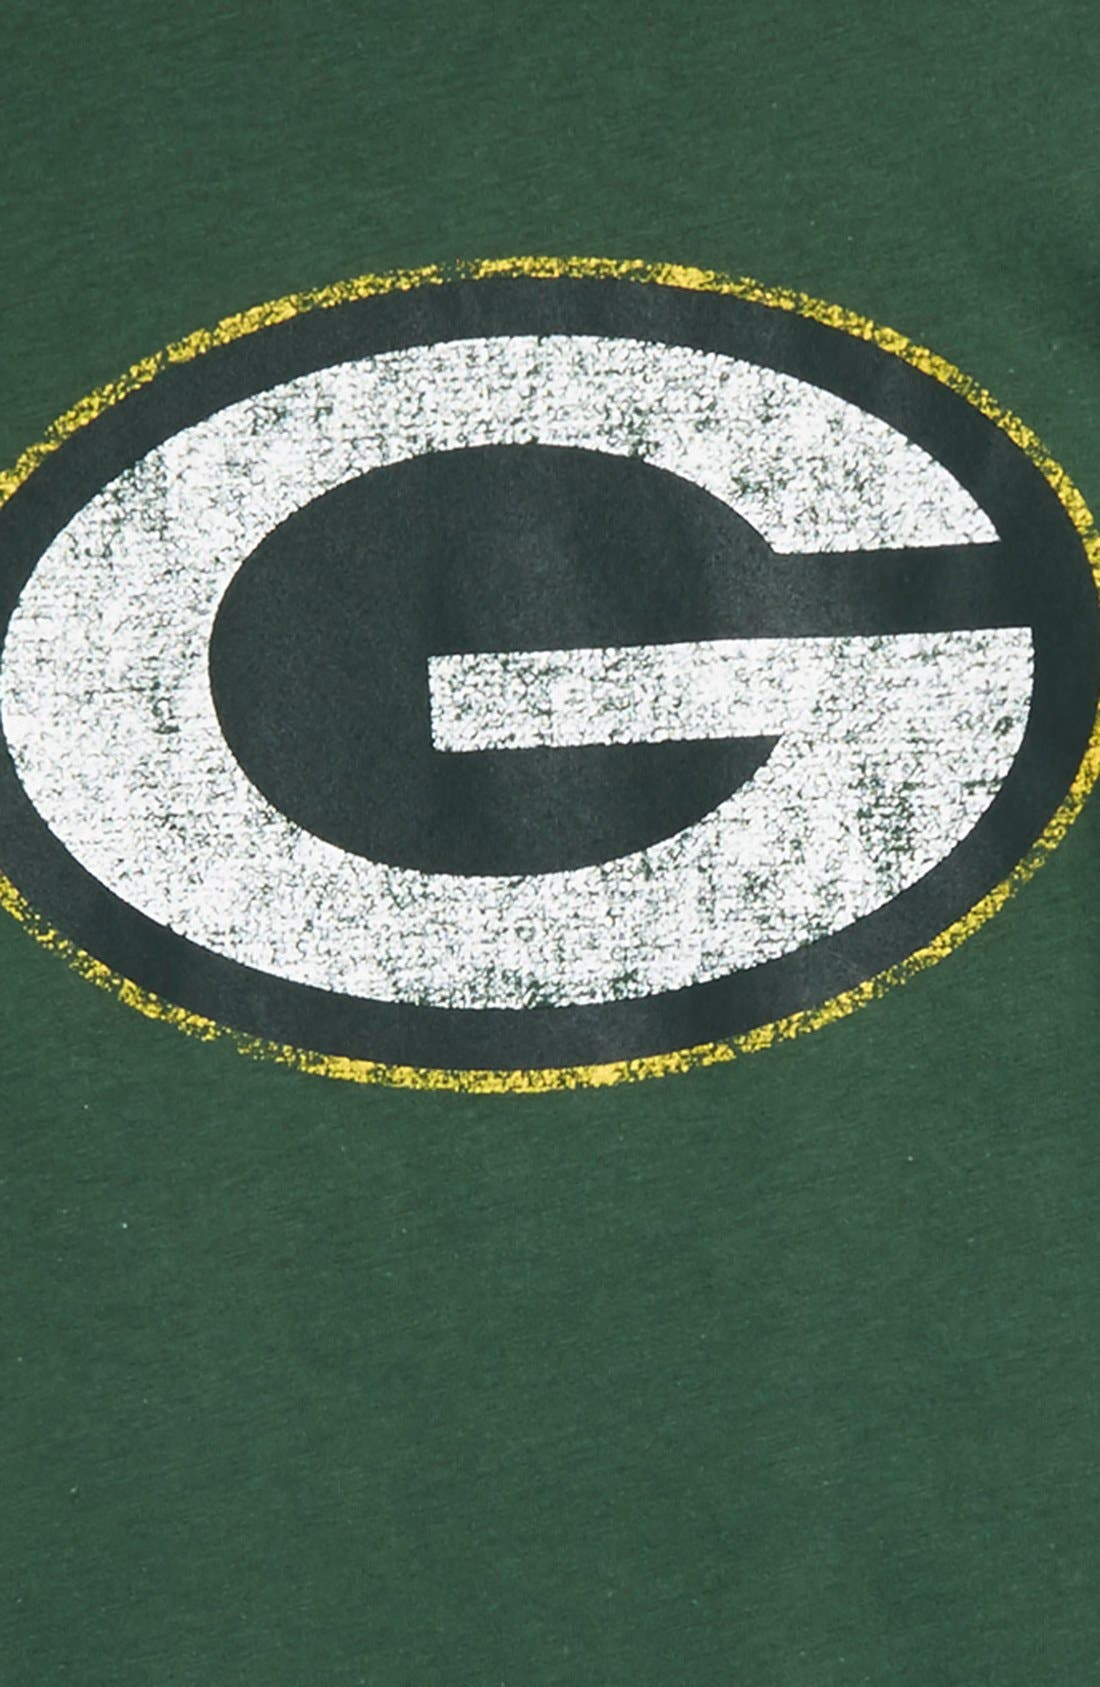 'NFL - Green Bay Packers' Distressed Logo Graphic T-Shirt,                             Alternate thumbnail 2, color,                             386